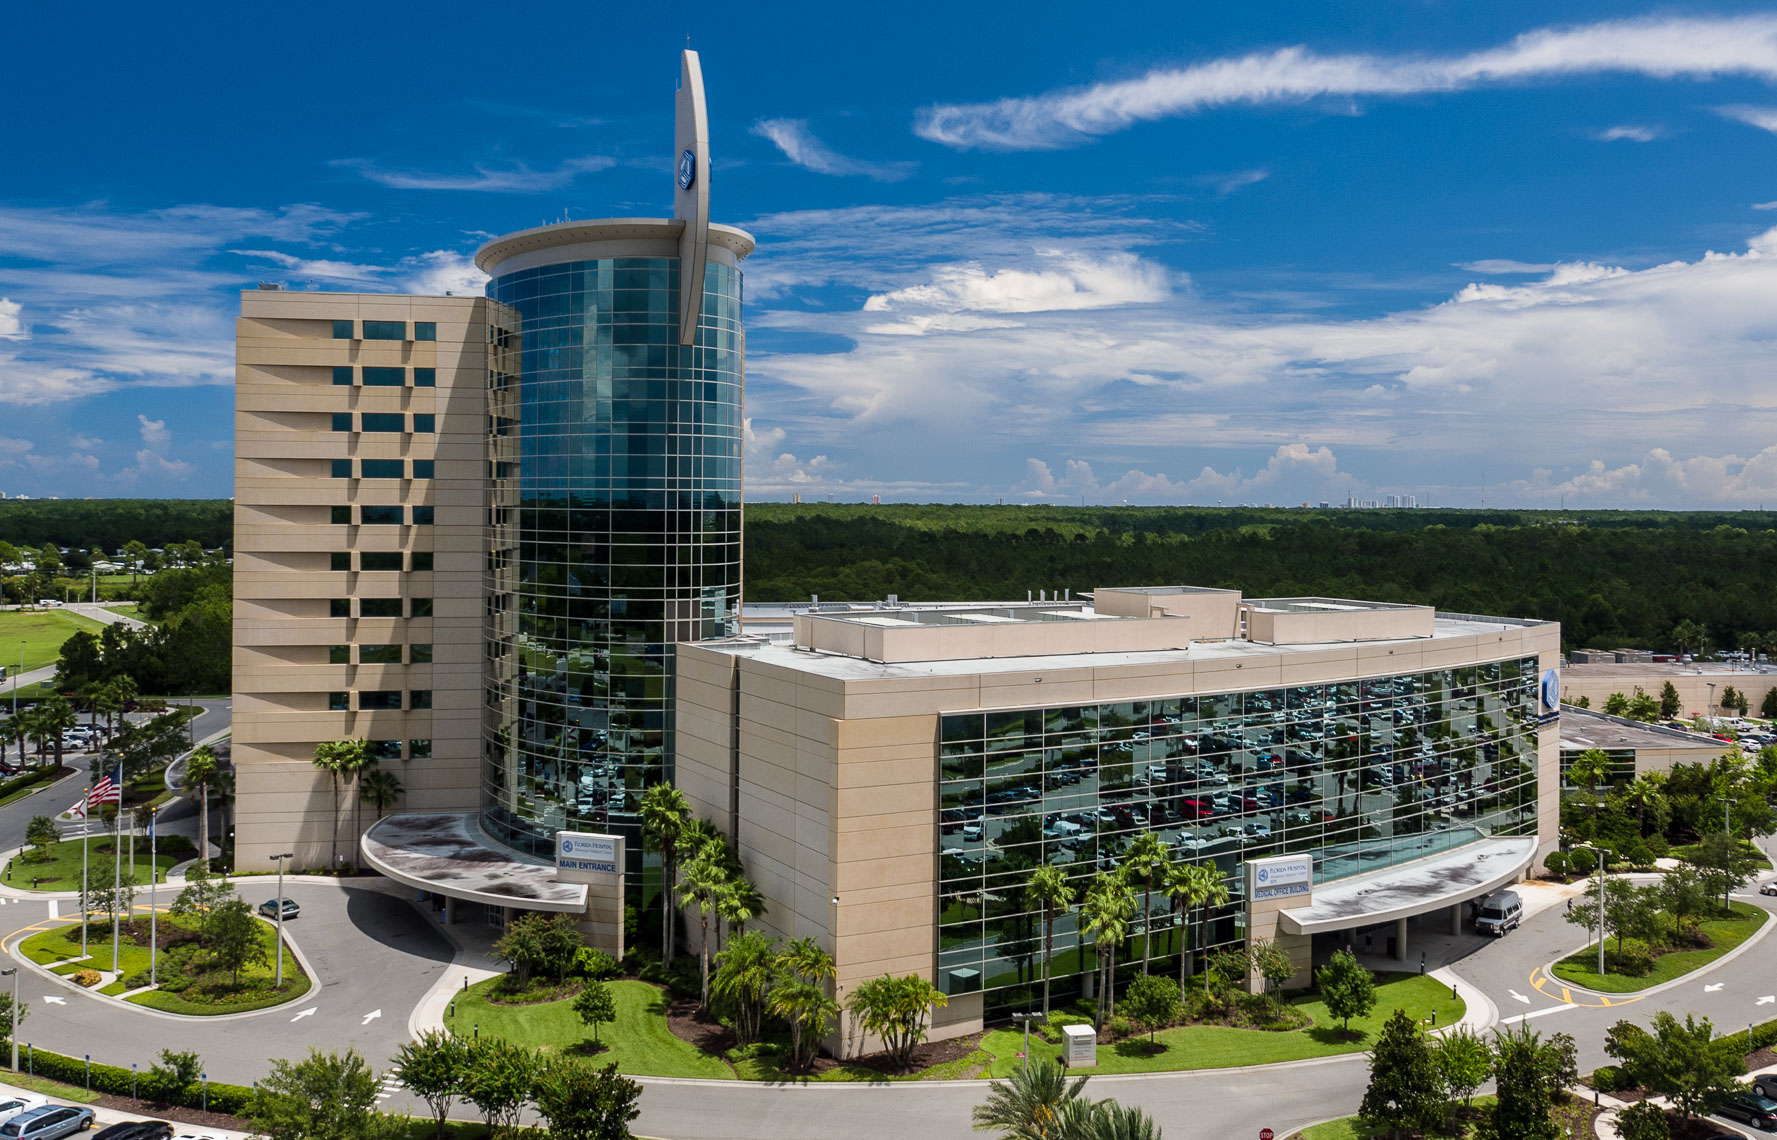 Aerial Florida Hospital Memorial Medical Center  - Mark Borosch Photography - Ormond Beach, FL